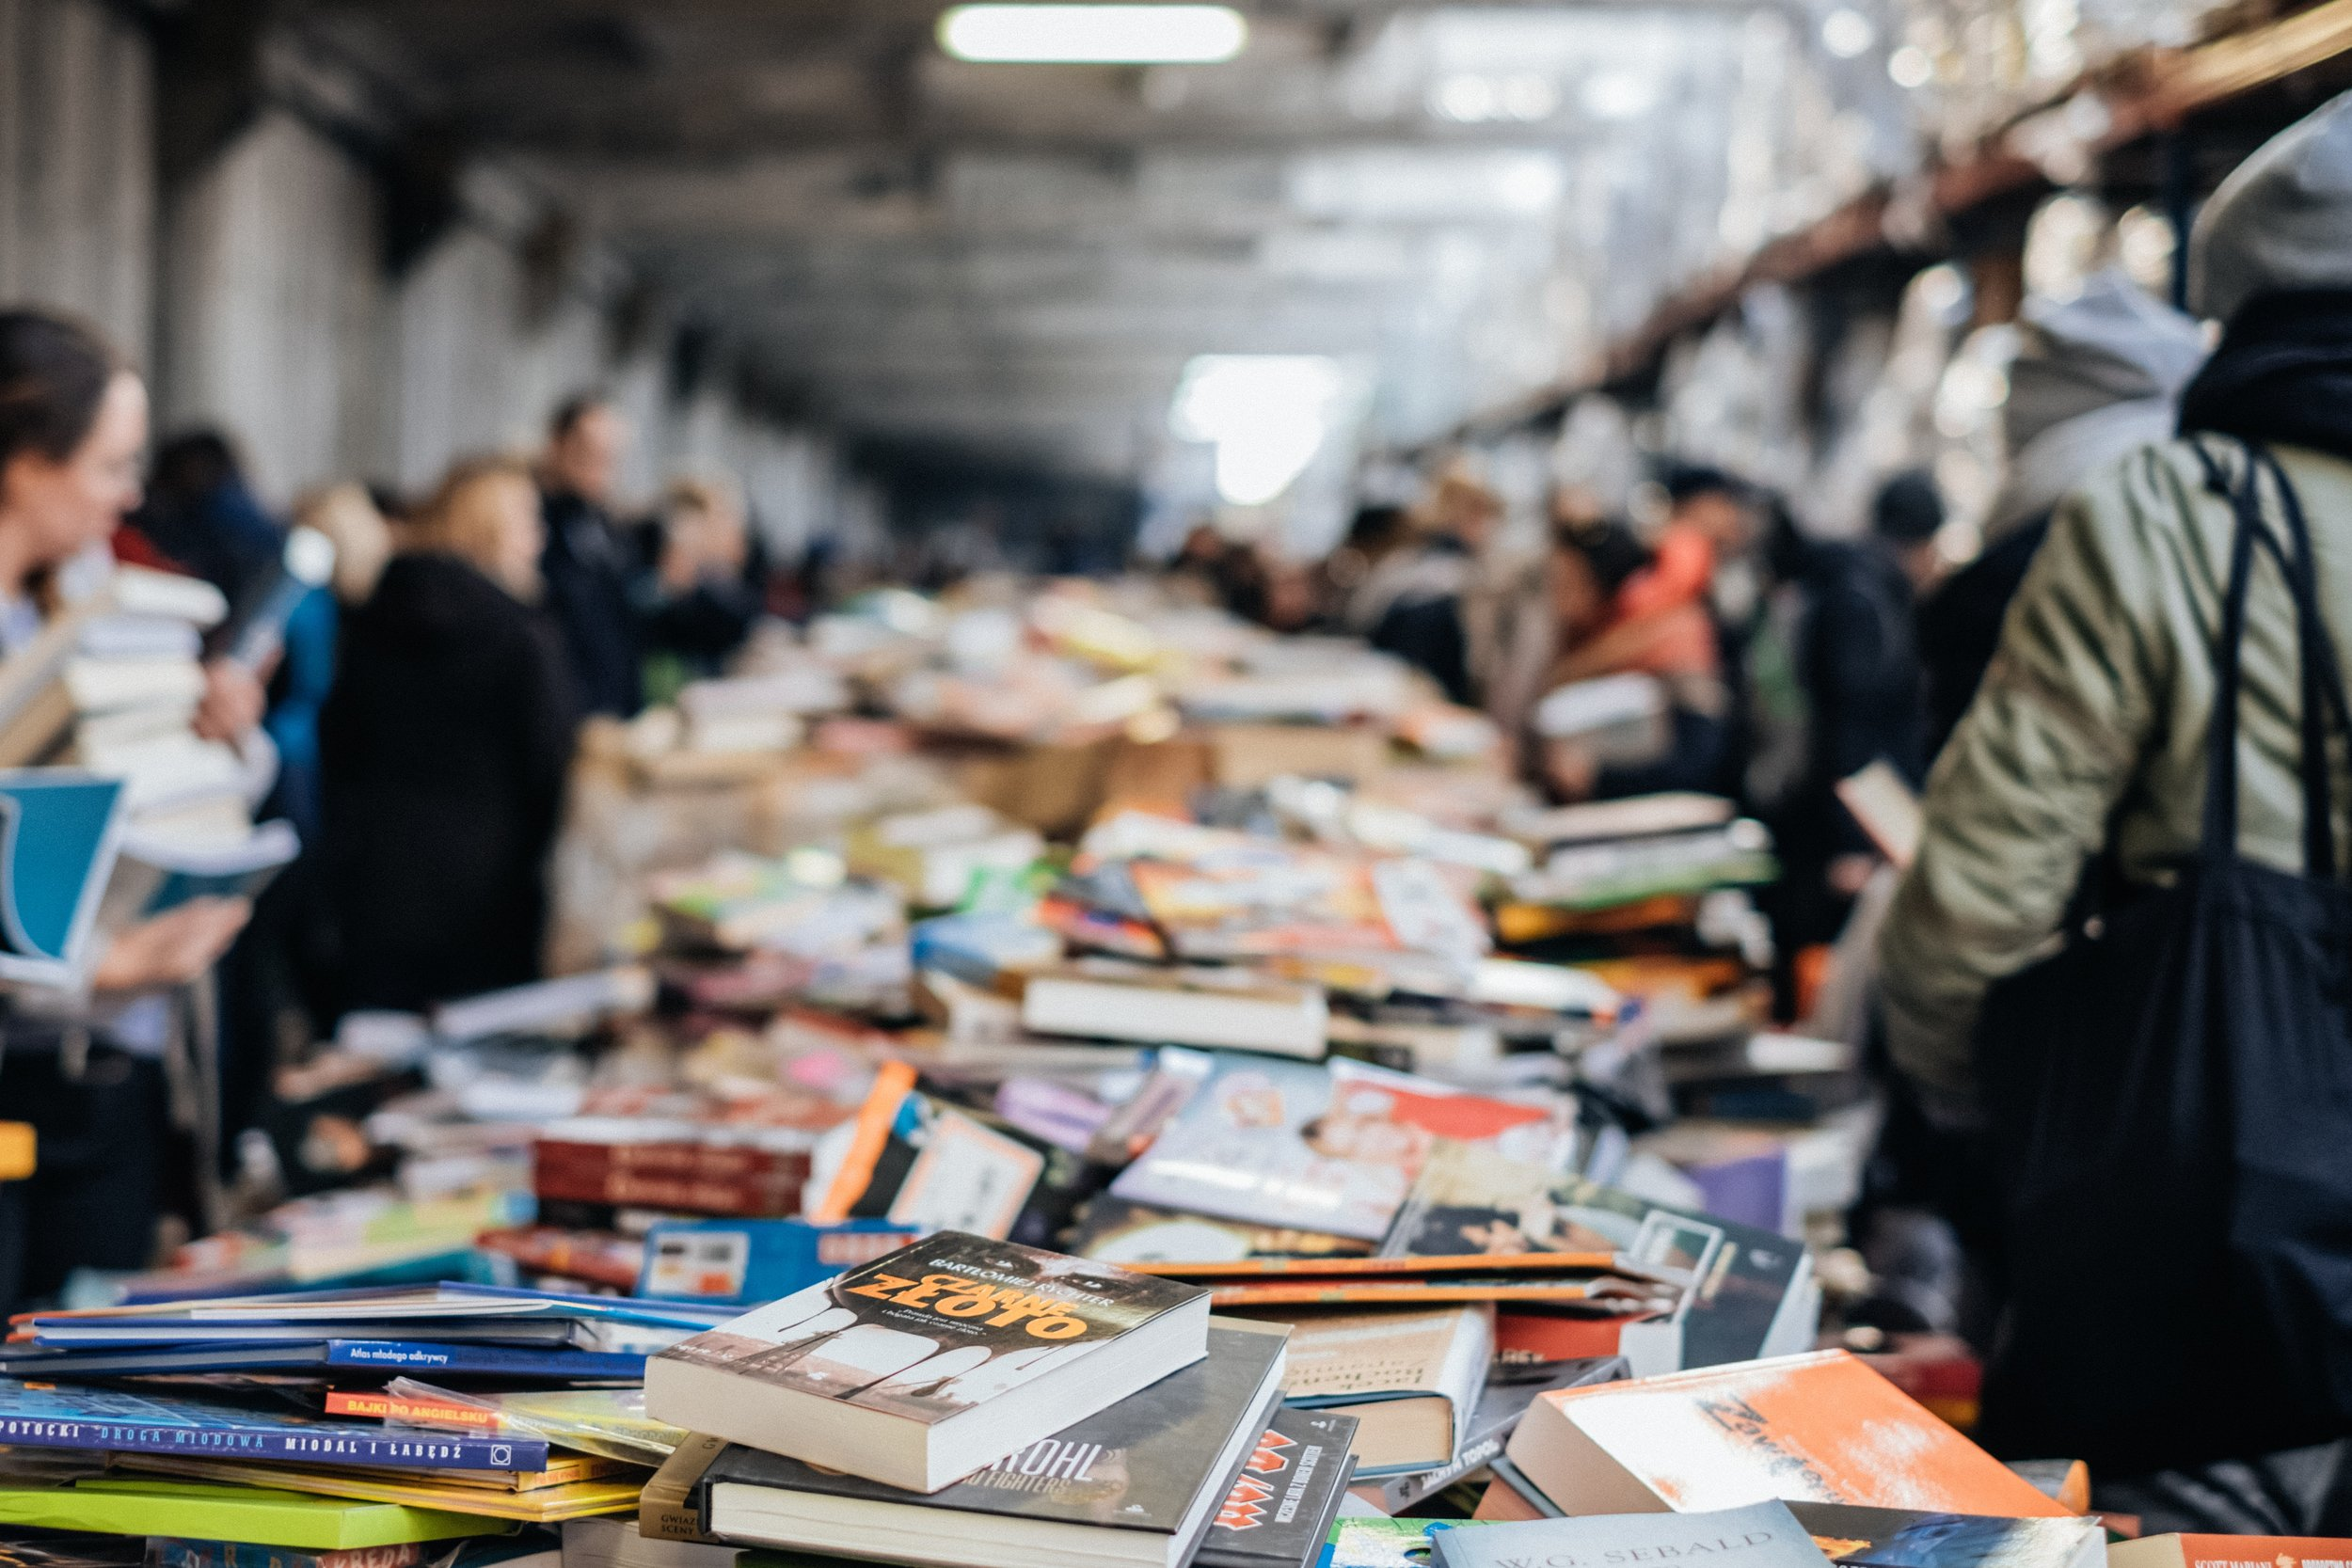 piles of books at a book sale